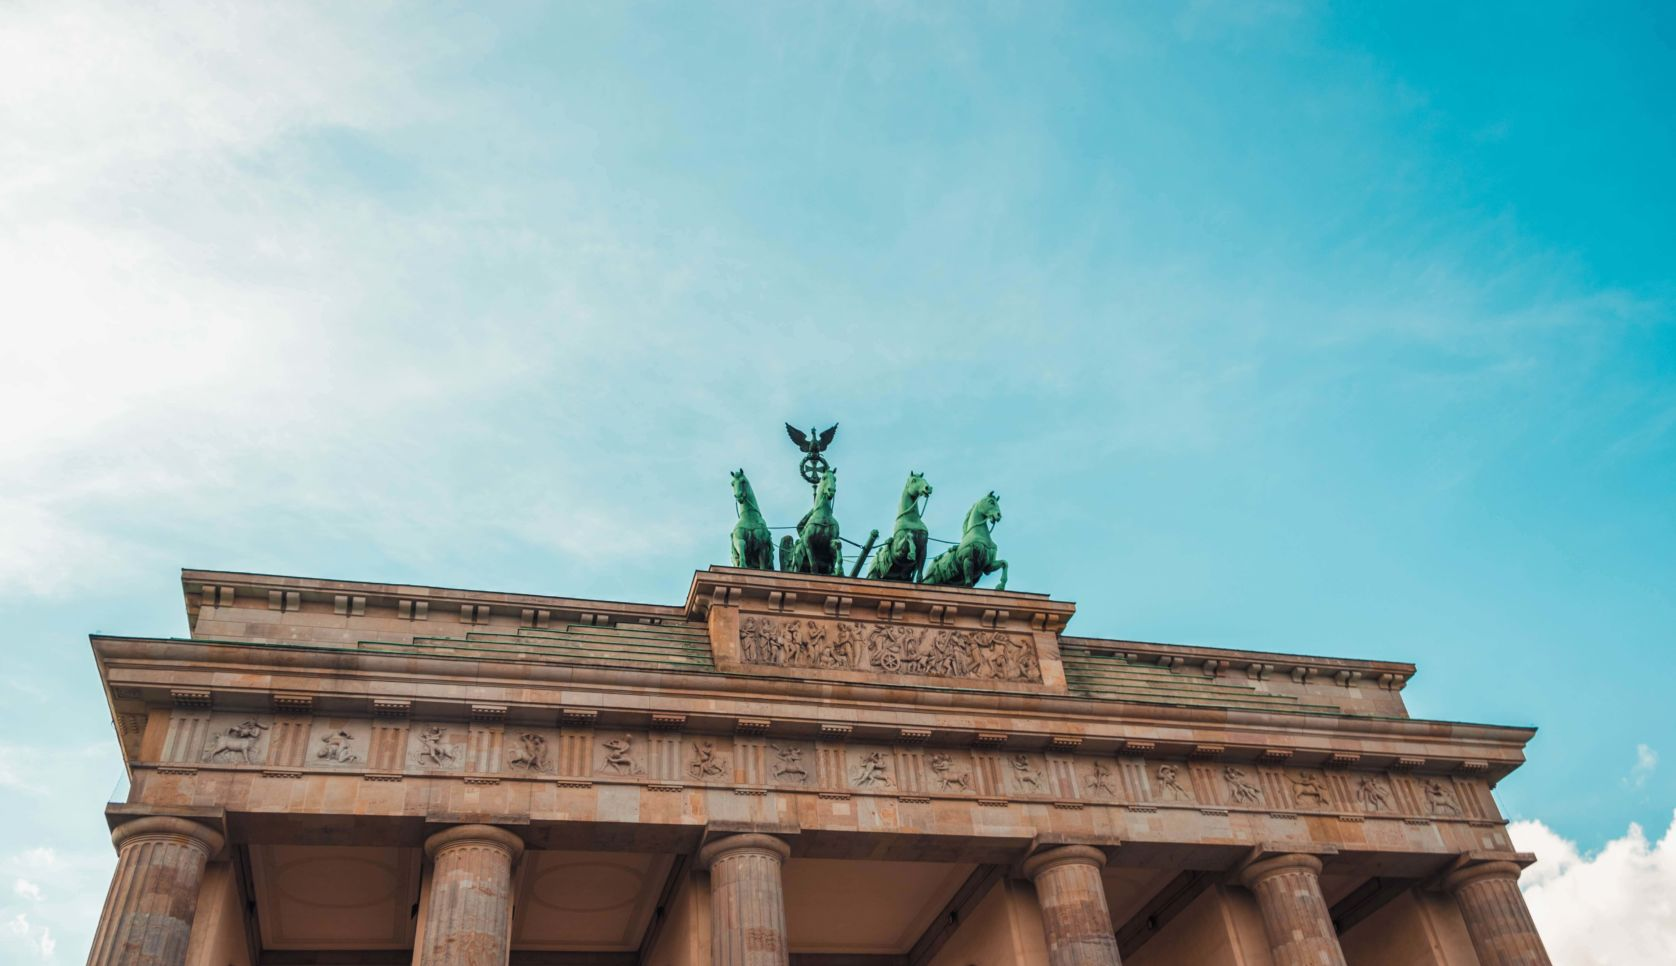 the Brandenburg Gate in Berlin, Germany